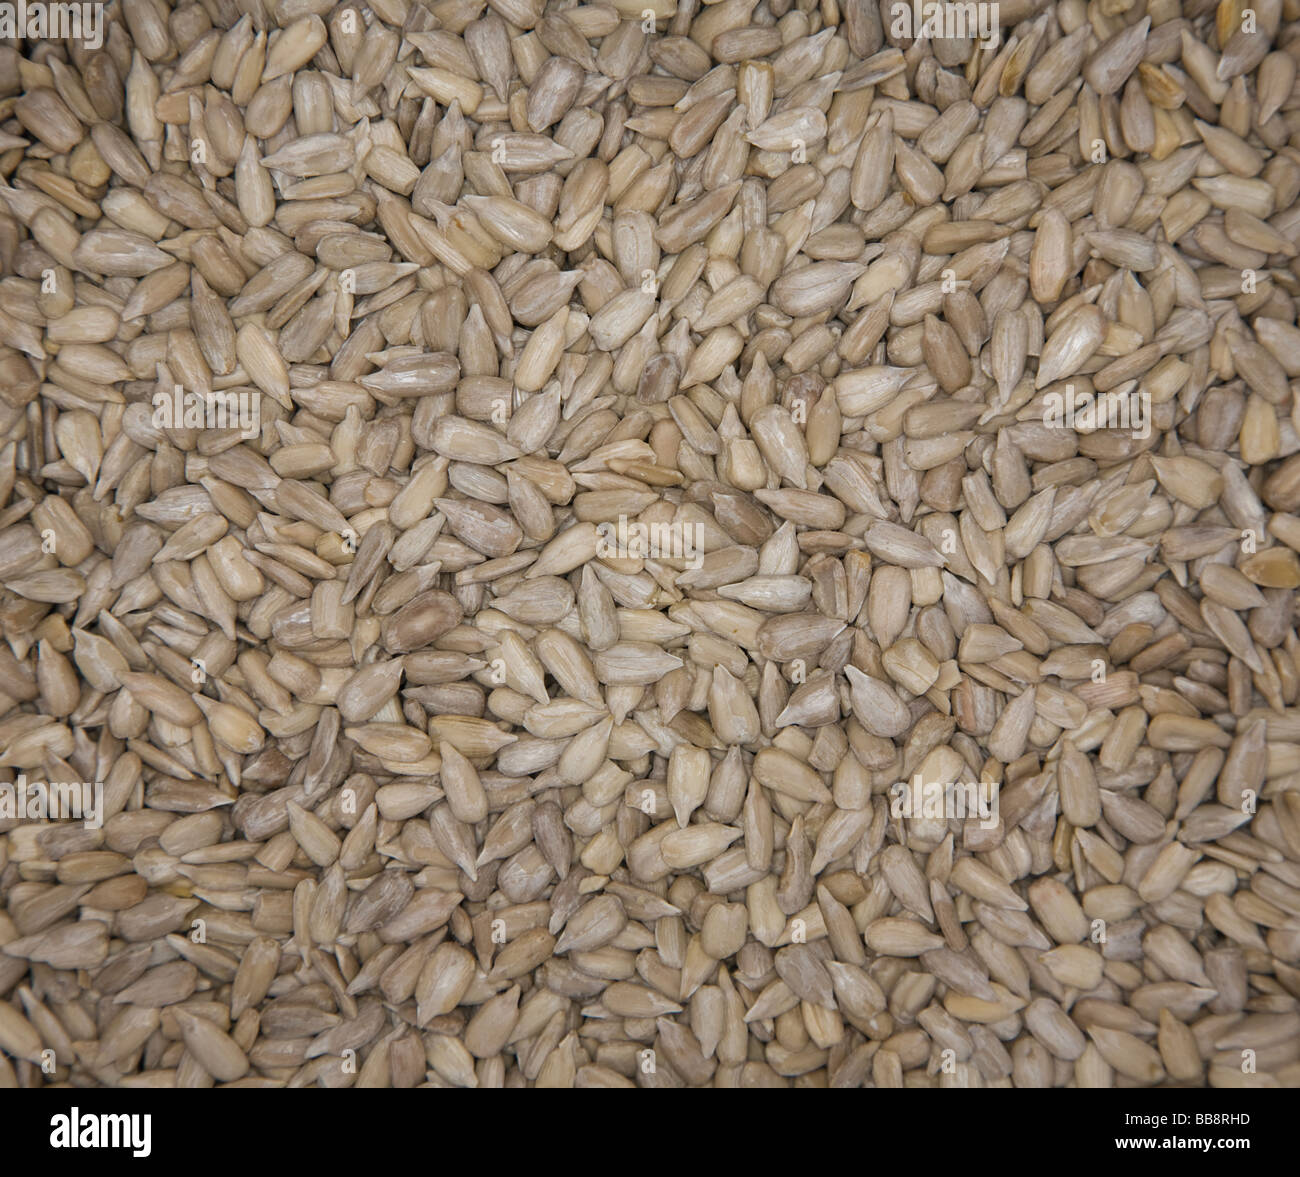 'sunflower seeds' healthy snack - Stock Image